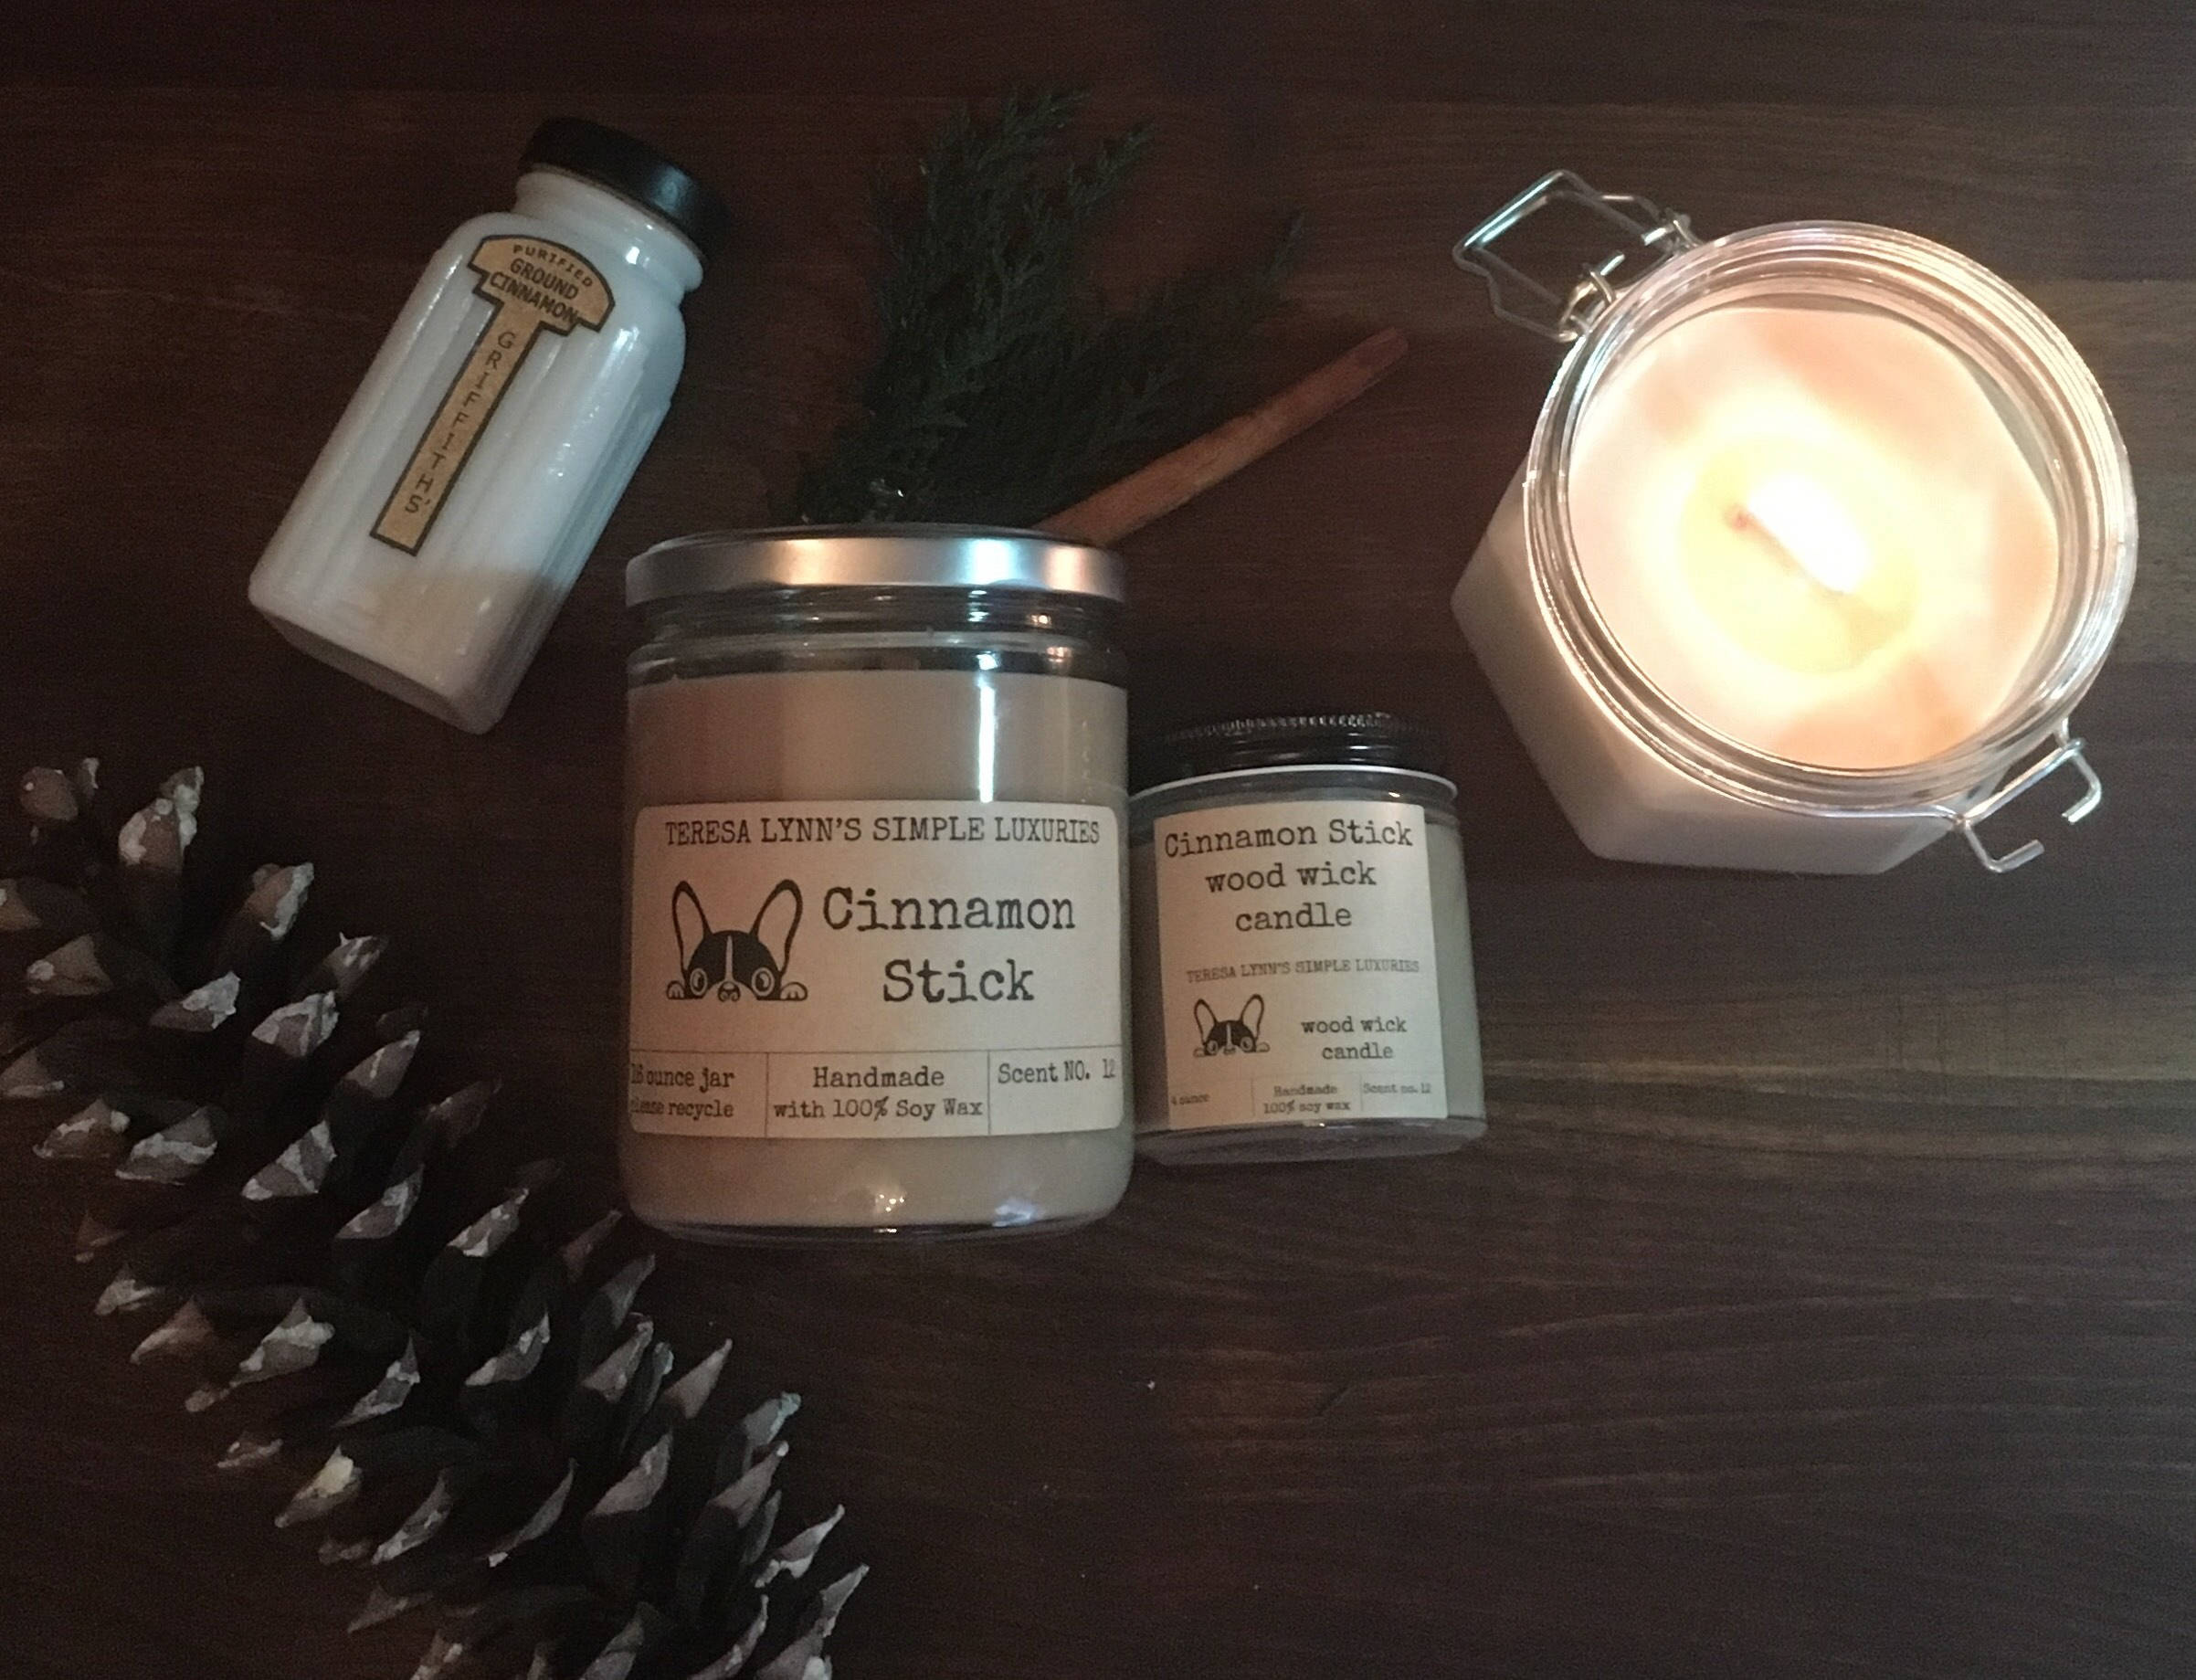 Cinnamon Stick scented   wood wick   soy candle   pure midwest soy